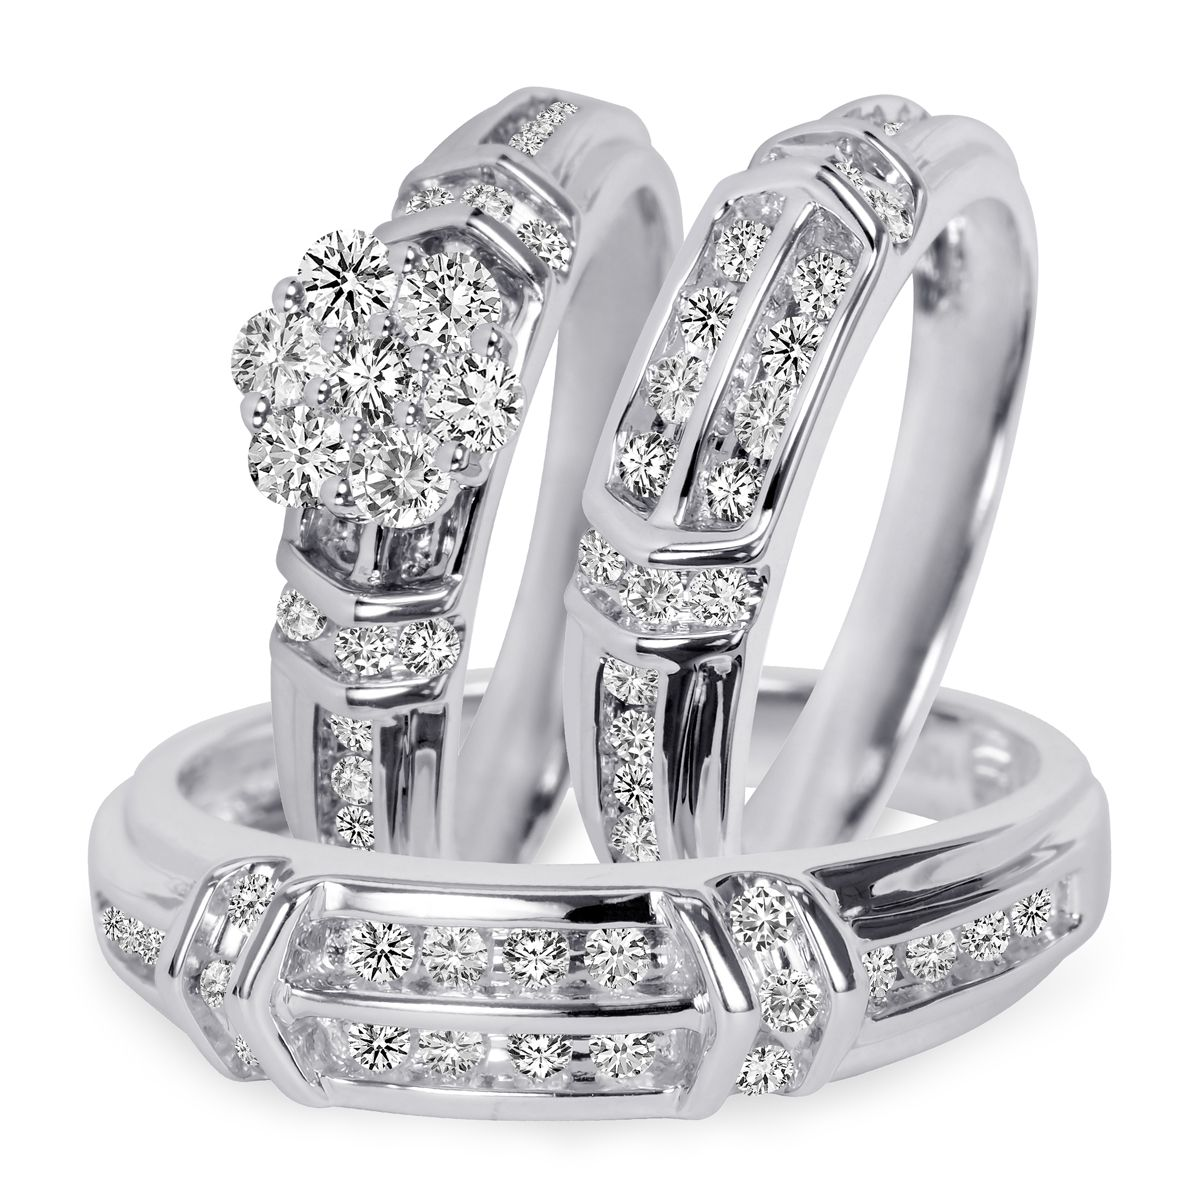 1 10 Carat T W Diamond Trio Matching Wedding Ring Set 10k White Gold My Rings Bt503w10k